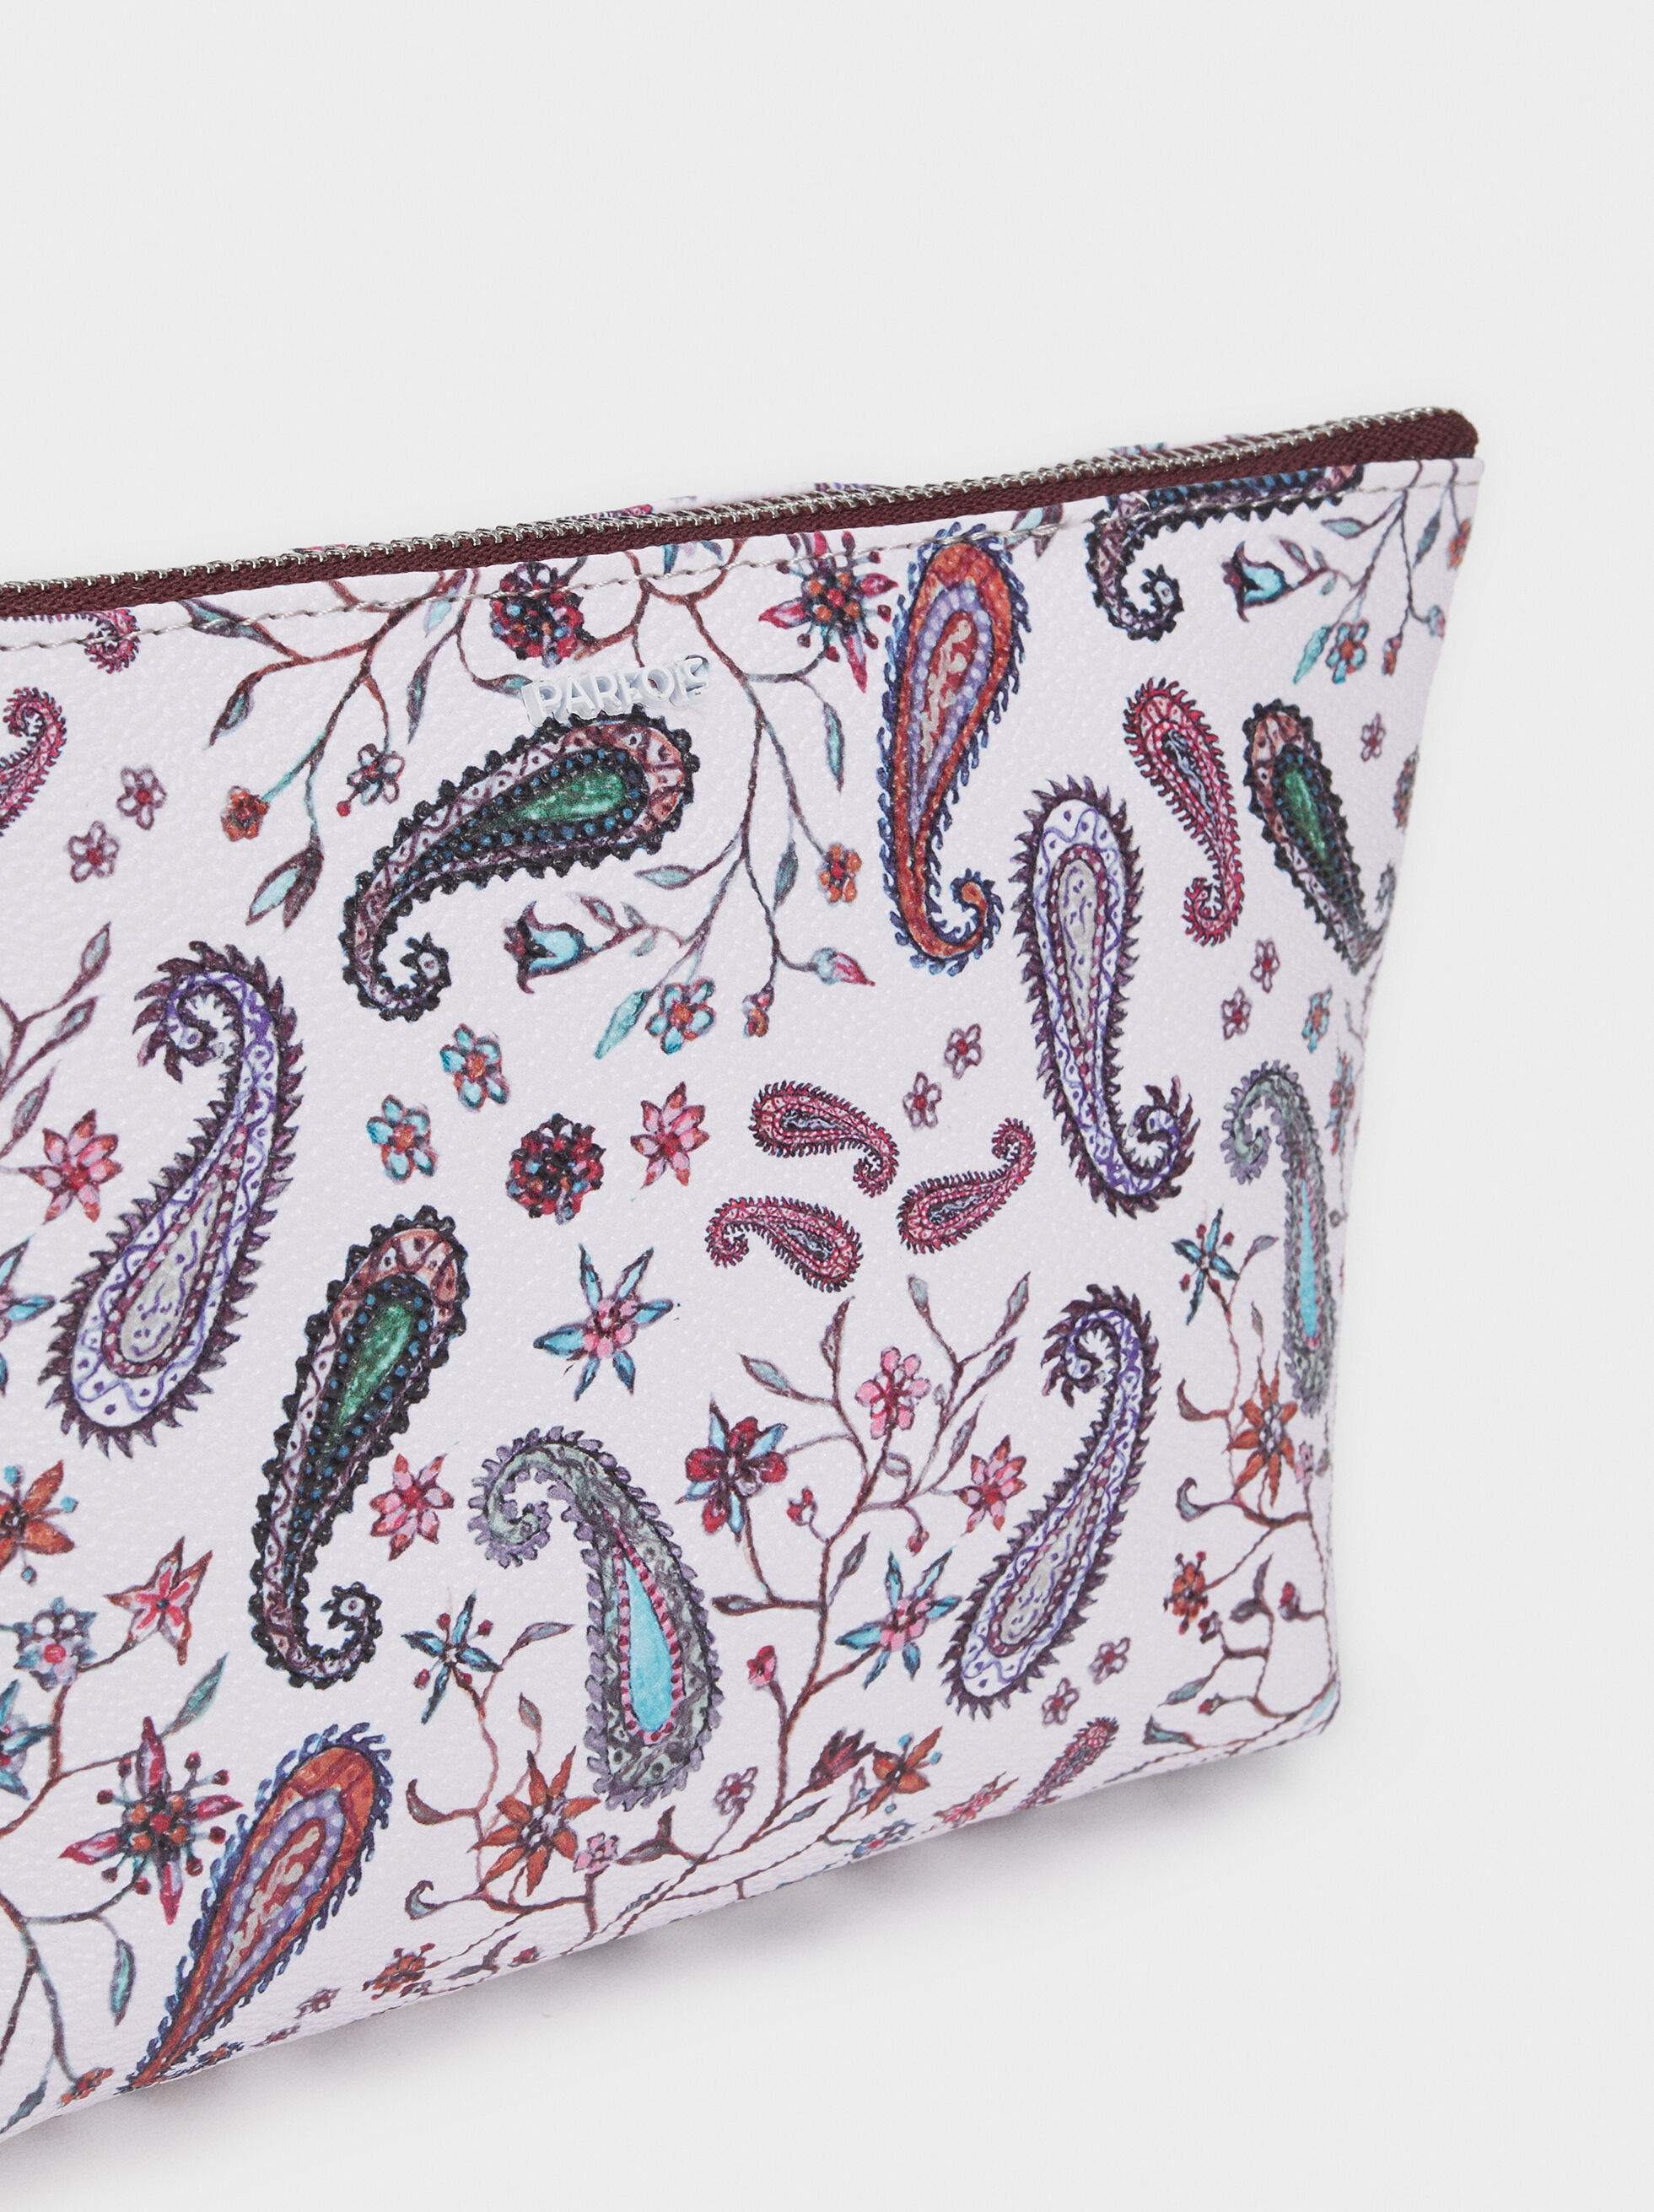 Paisley Print Toiletry Bag, Pink, hi-res